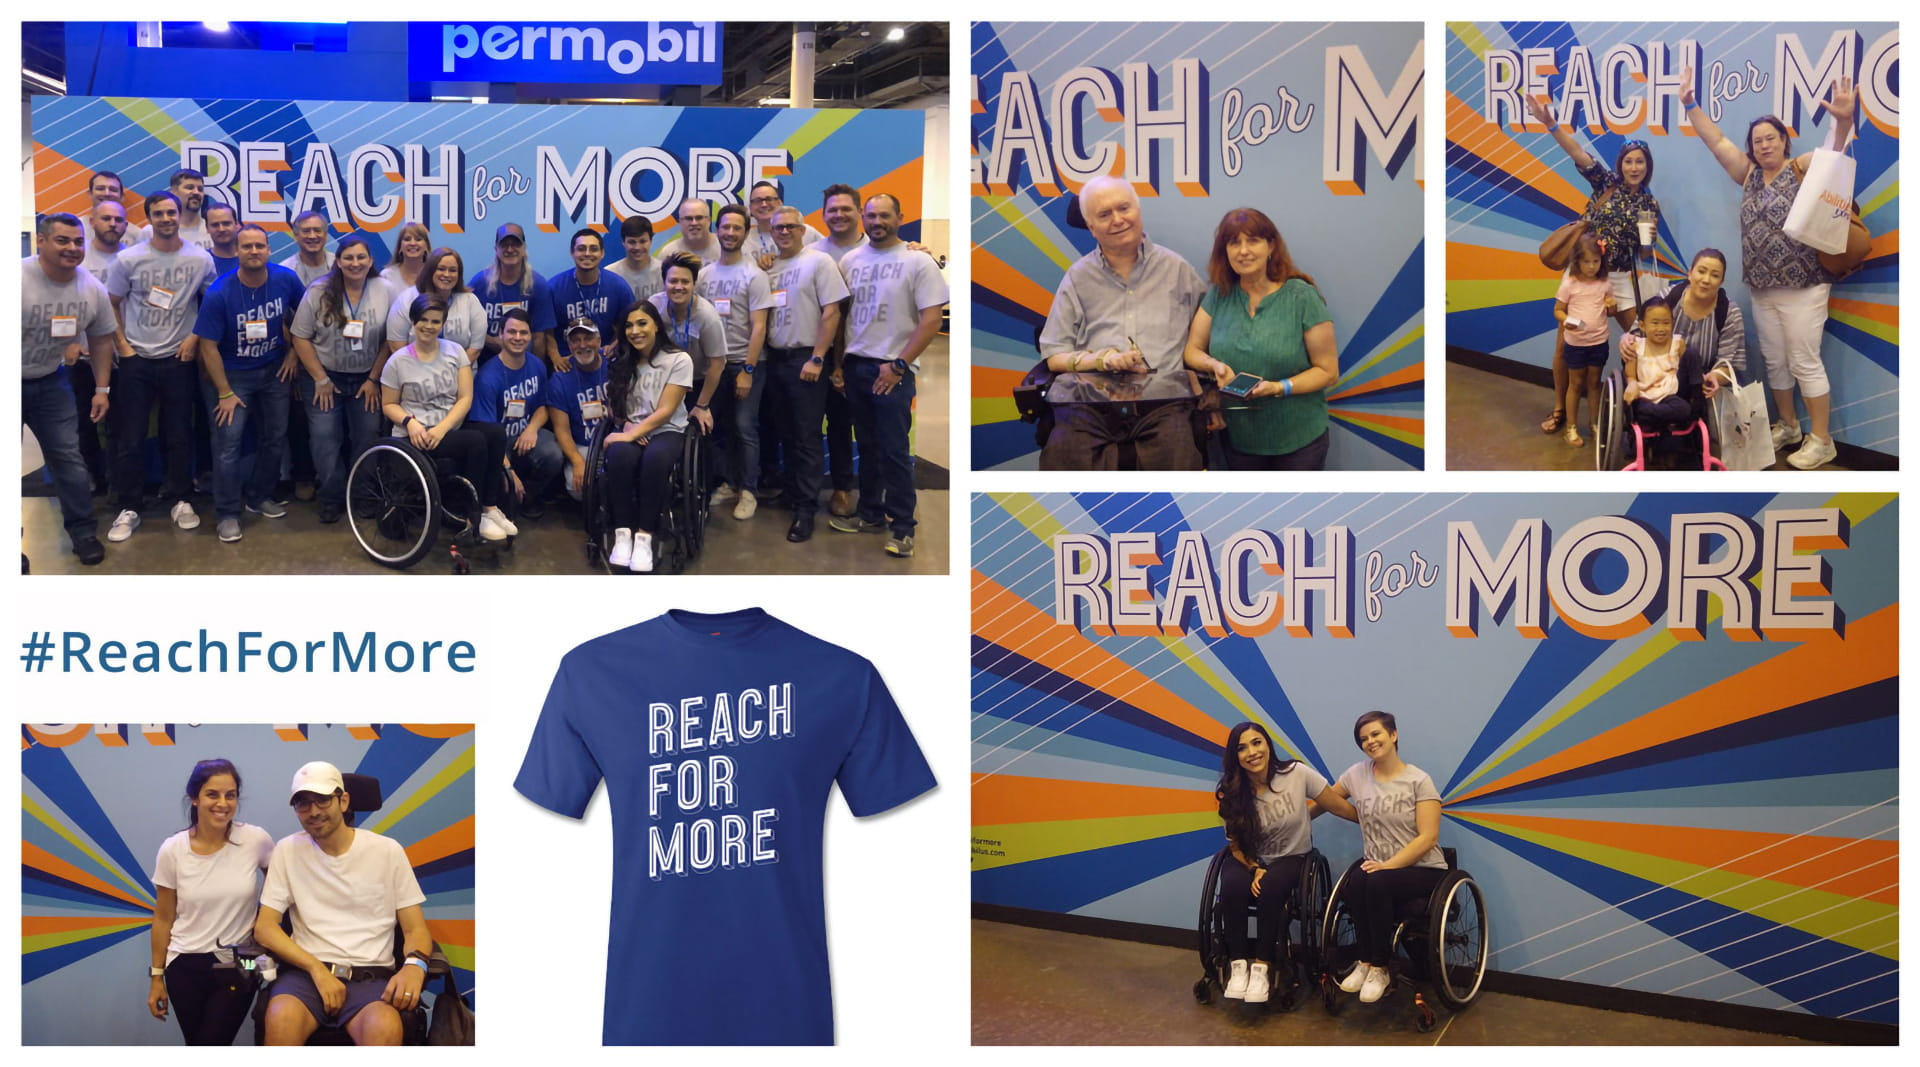 ReachForMore-Collage-with-Hastag-Optmized